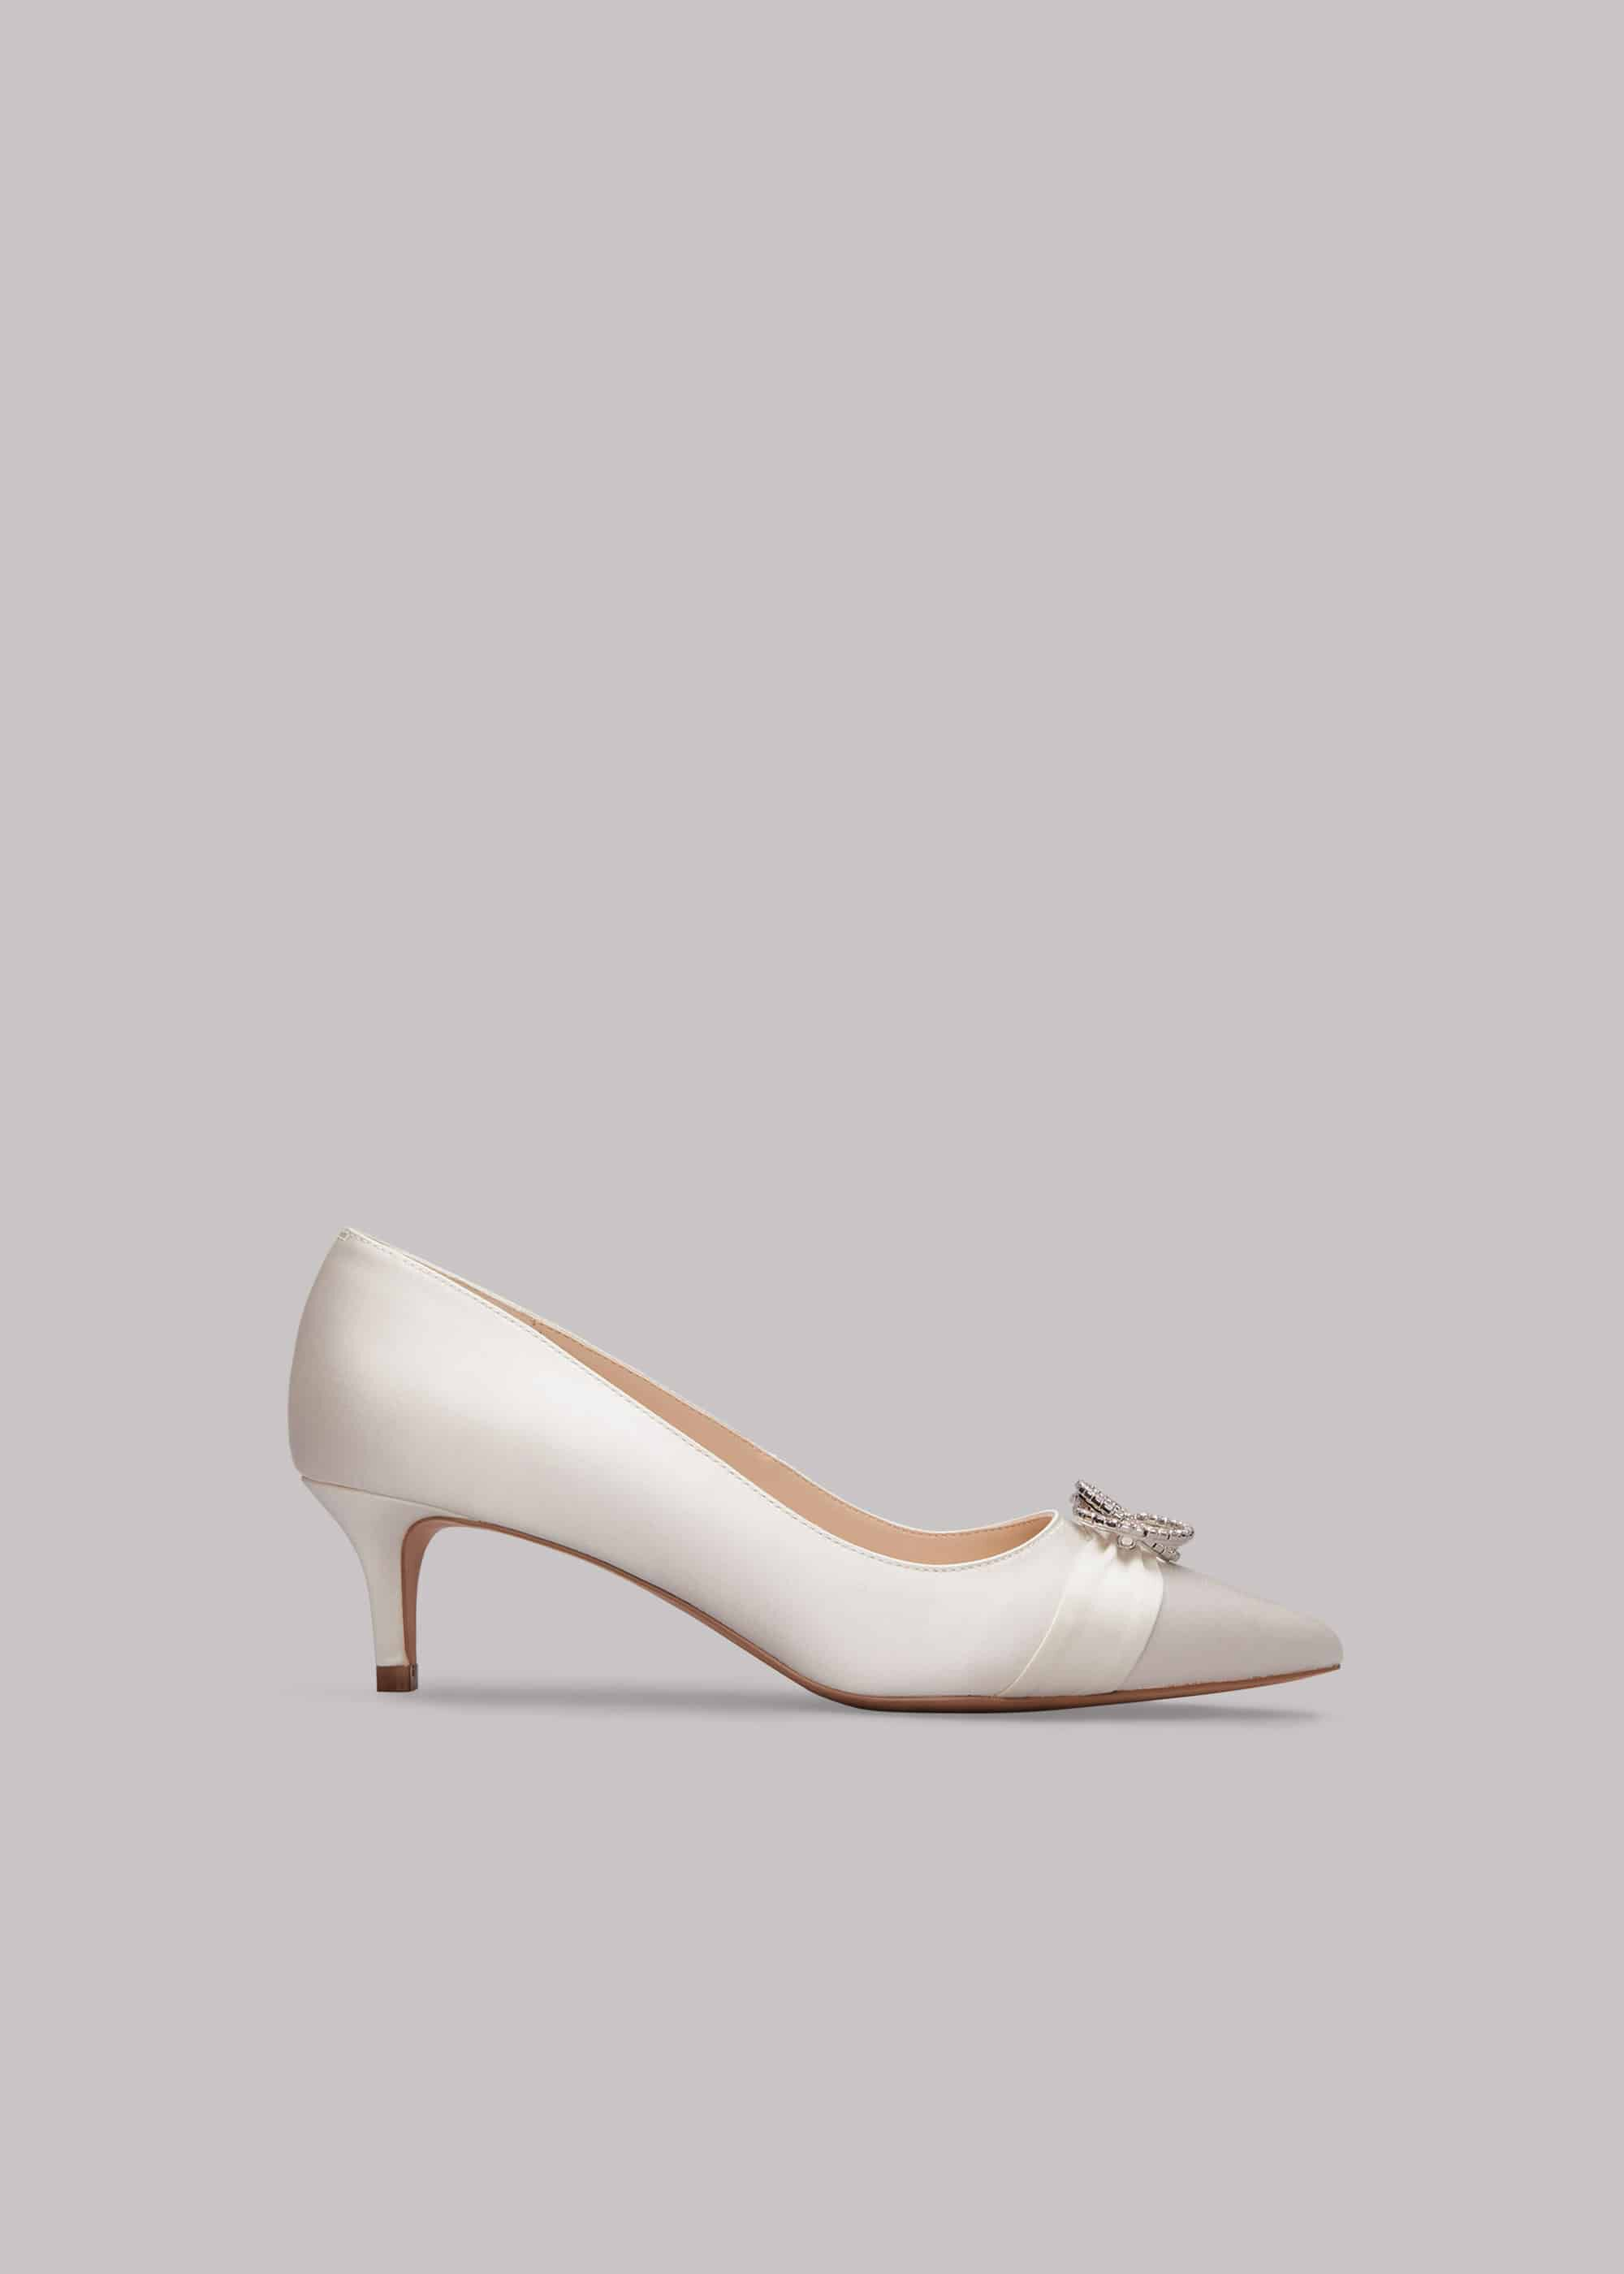 Phase Eight Joelle Sparkle Shoe, Cream, High Heels